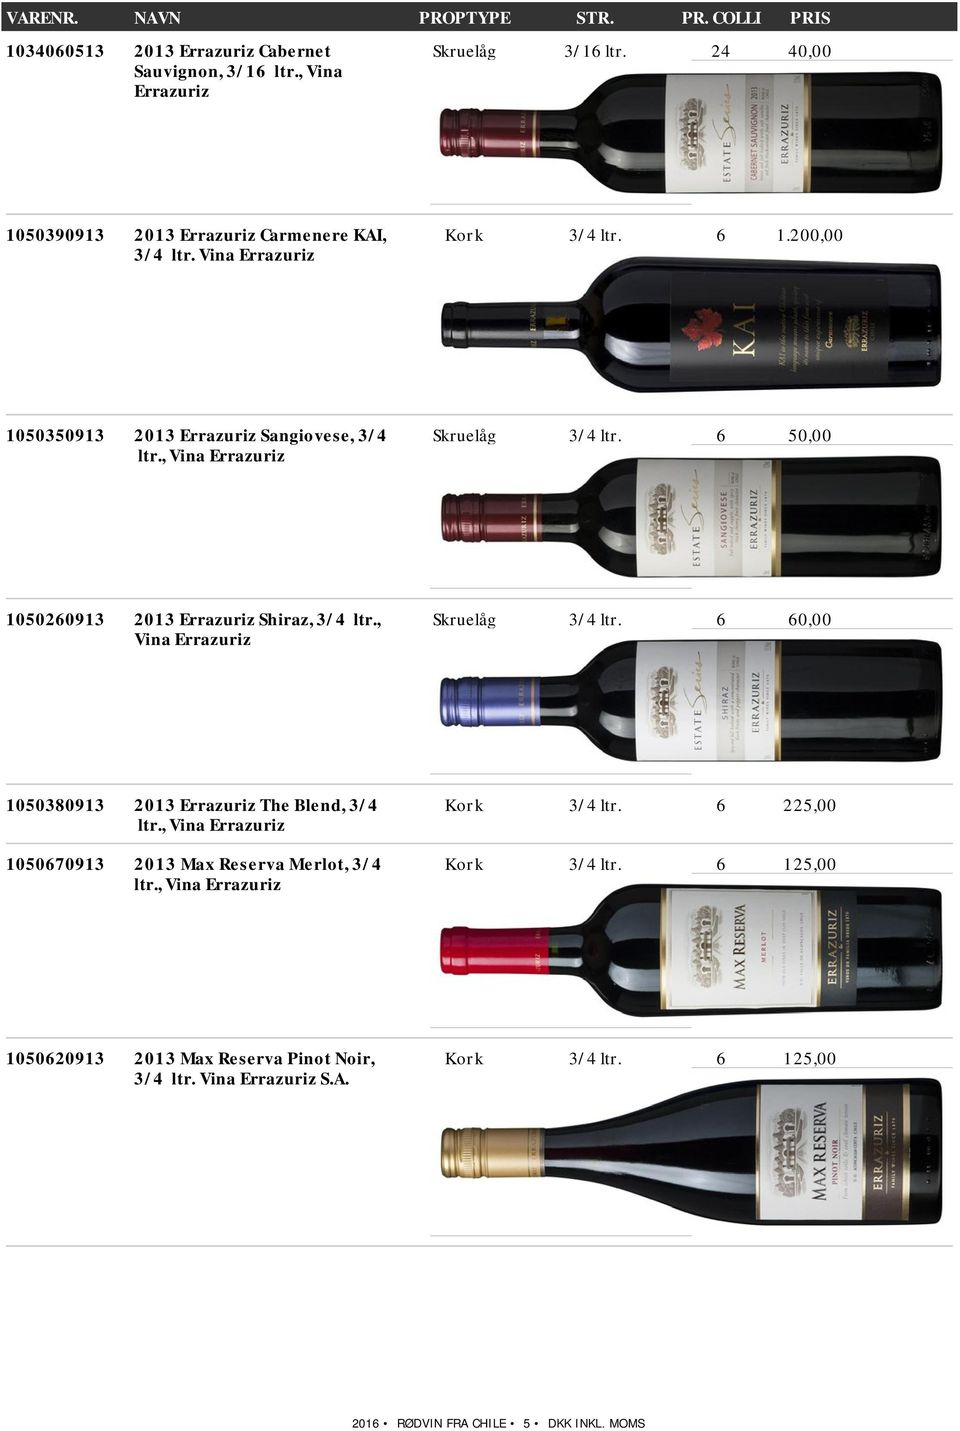 6 50,00 1050260913 2013 Shiraz, 3/4 ltr., Vina Skruelåg 3/4 ltr. 6 60,00 1050380913 2013 The Blend, 3/4 ltr.